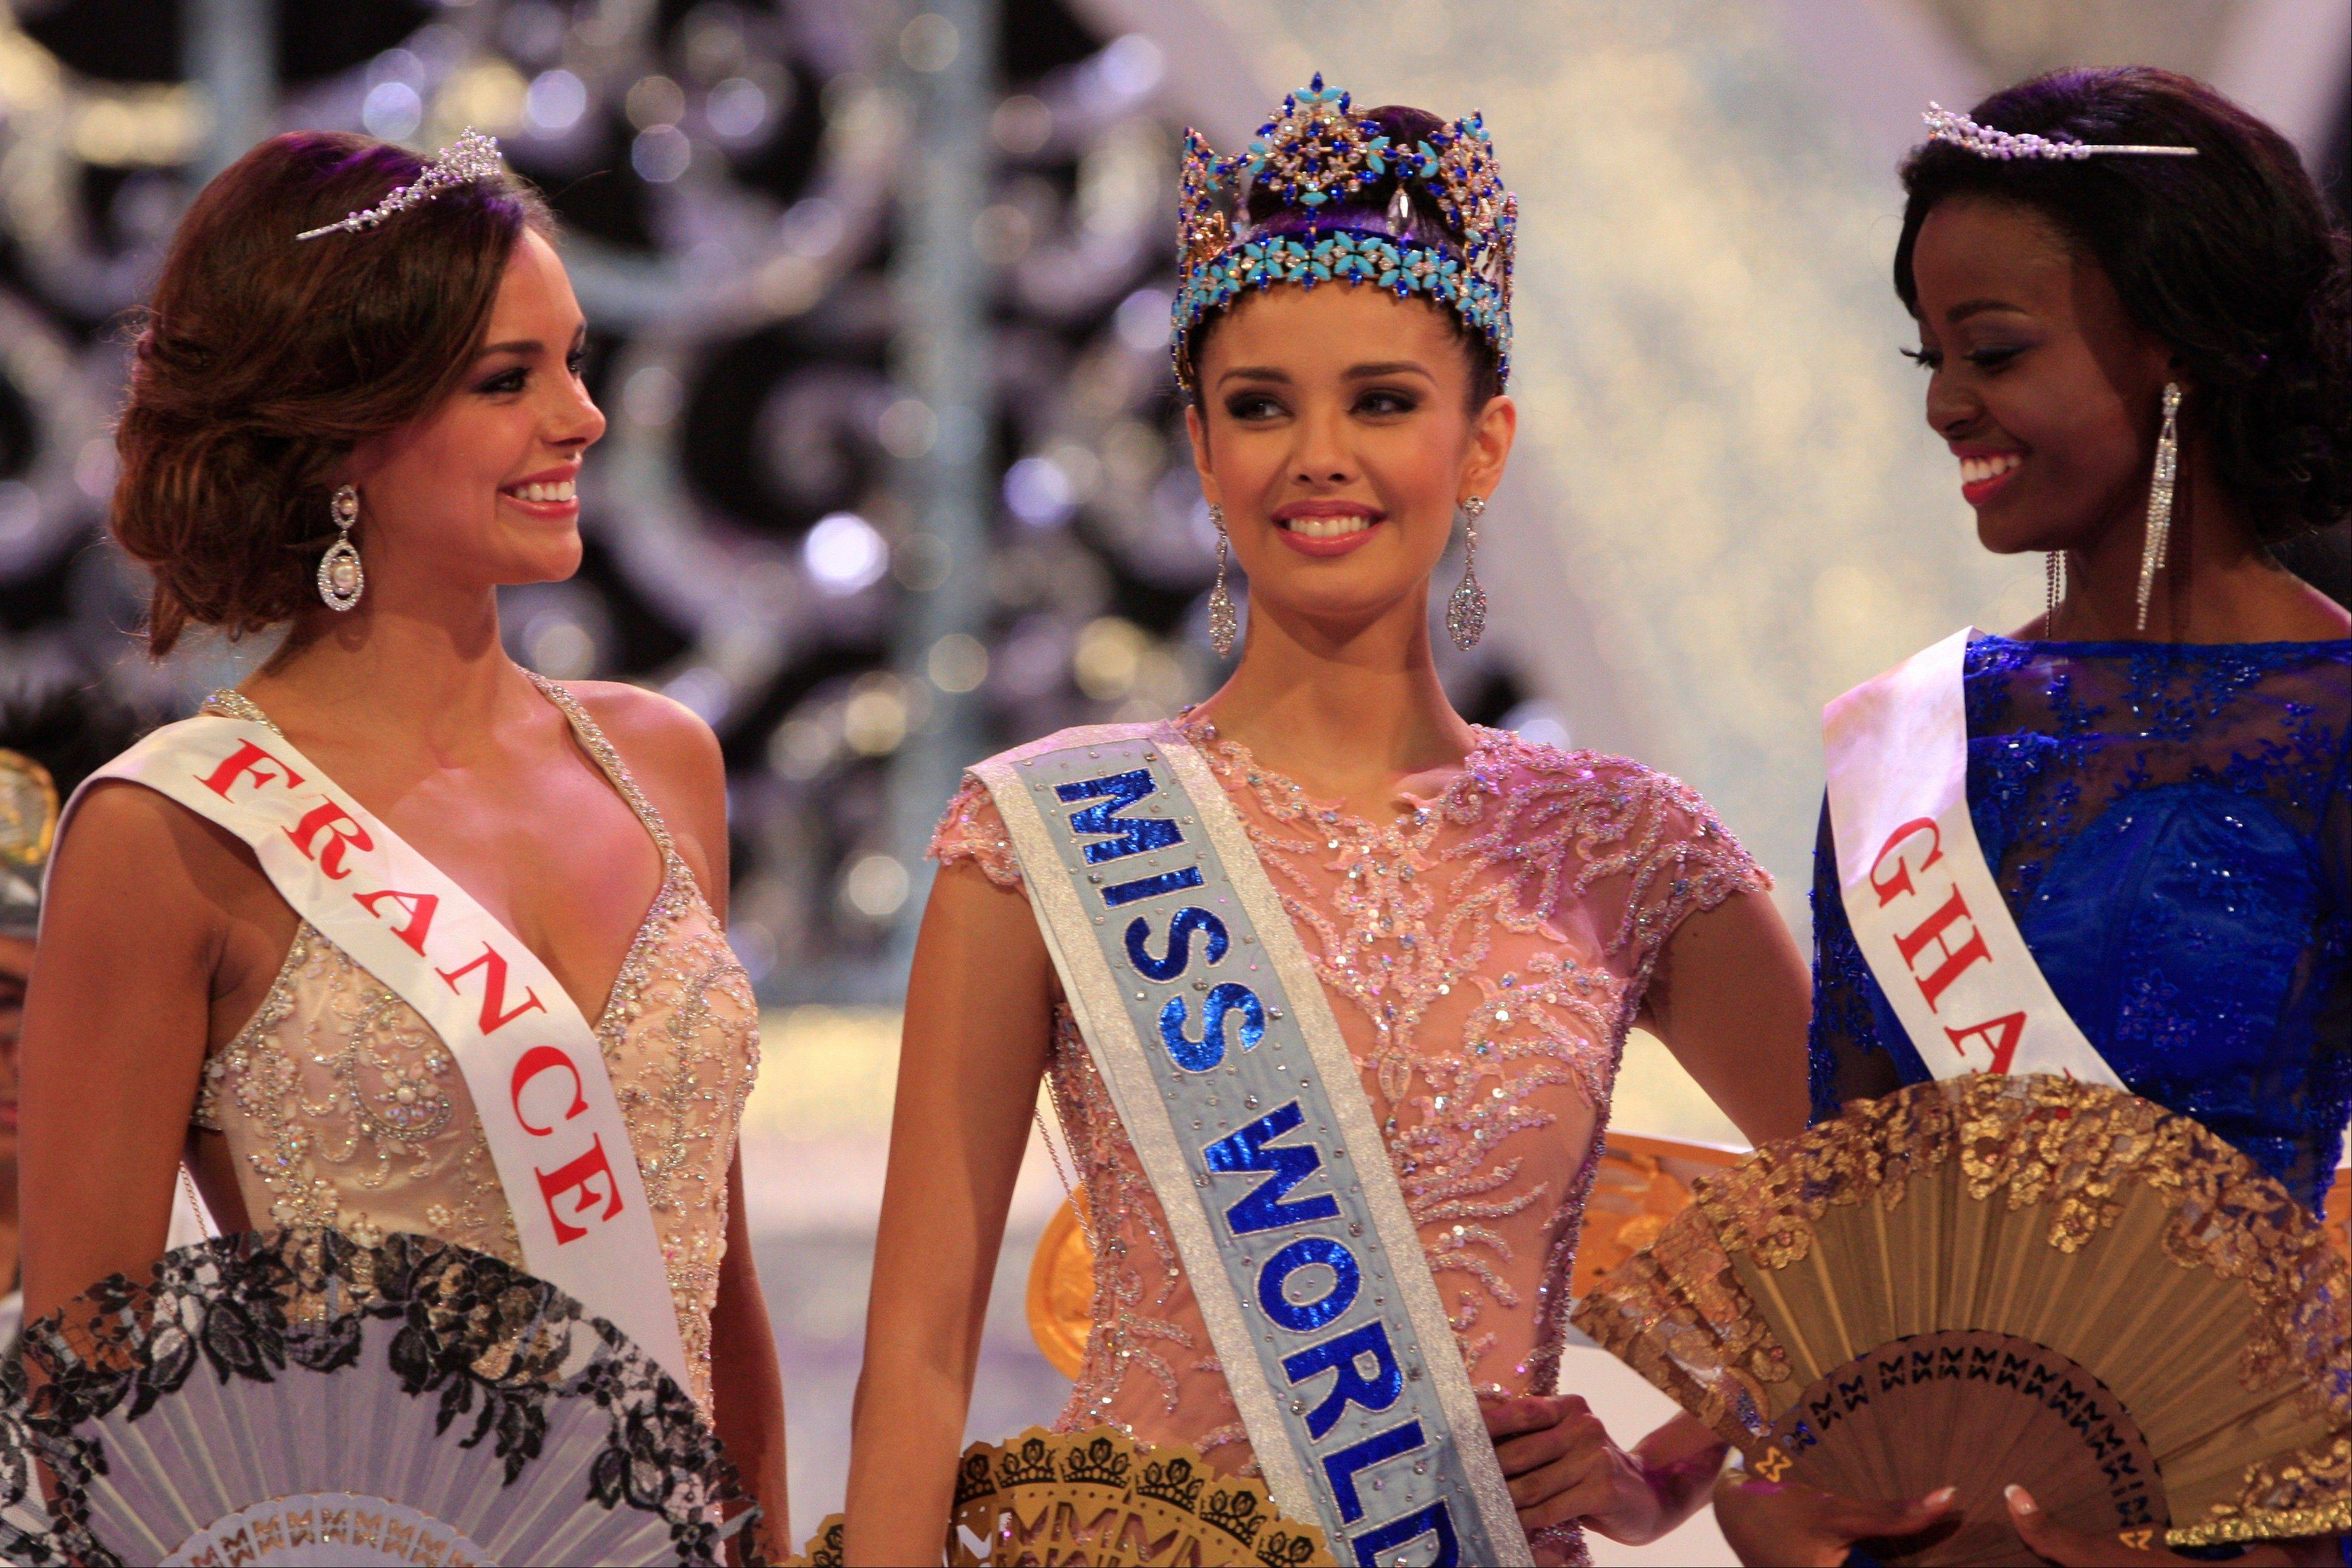 Newly crowned Miss World, Megan Young of Philippines, center, with second runner-up Miss France Marine Lorpheline, left, and third runner-up Miss Ghana Carranza Naa Okailey Shooter, smile after they winning the Miss World contest in Nusa Dua, Bali, Indonesia, Saturday, Sept. 28.